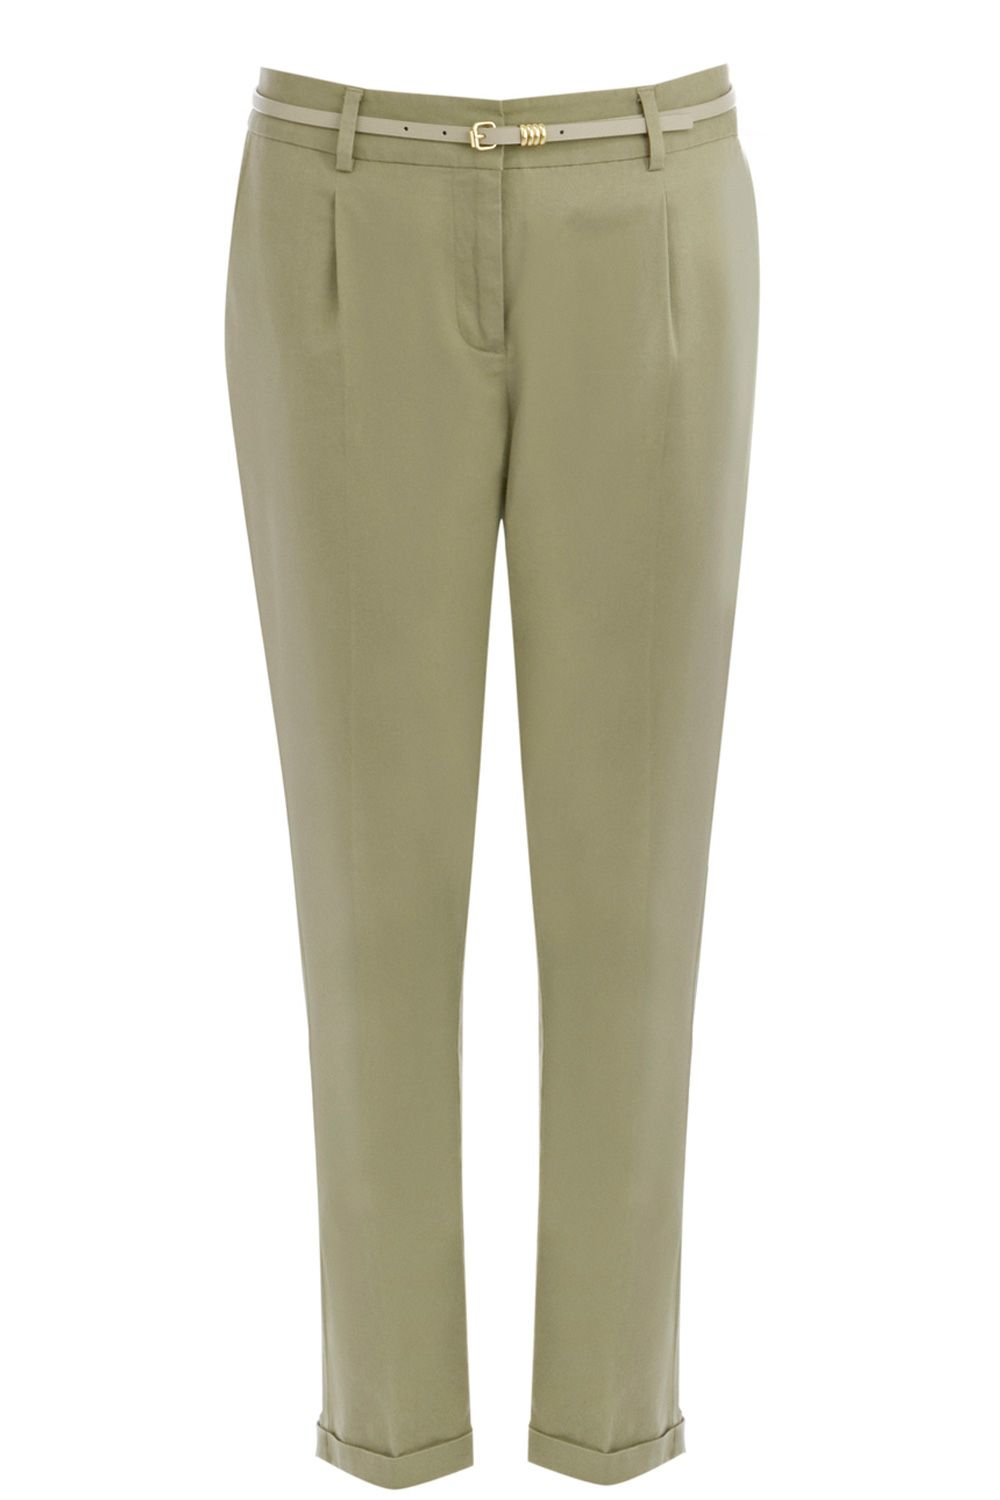 Stab stitch washed peg trouser